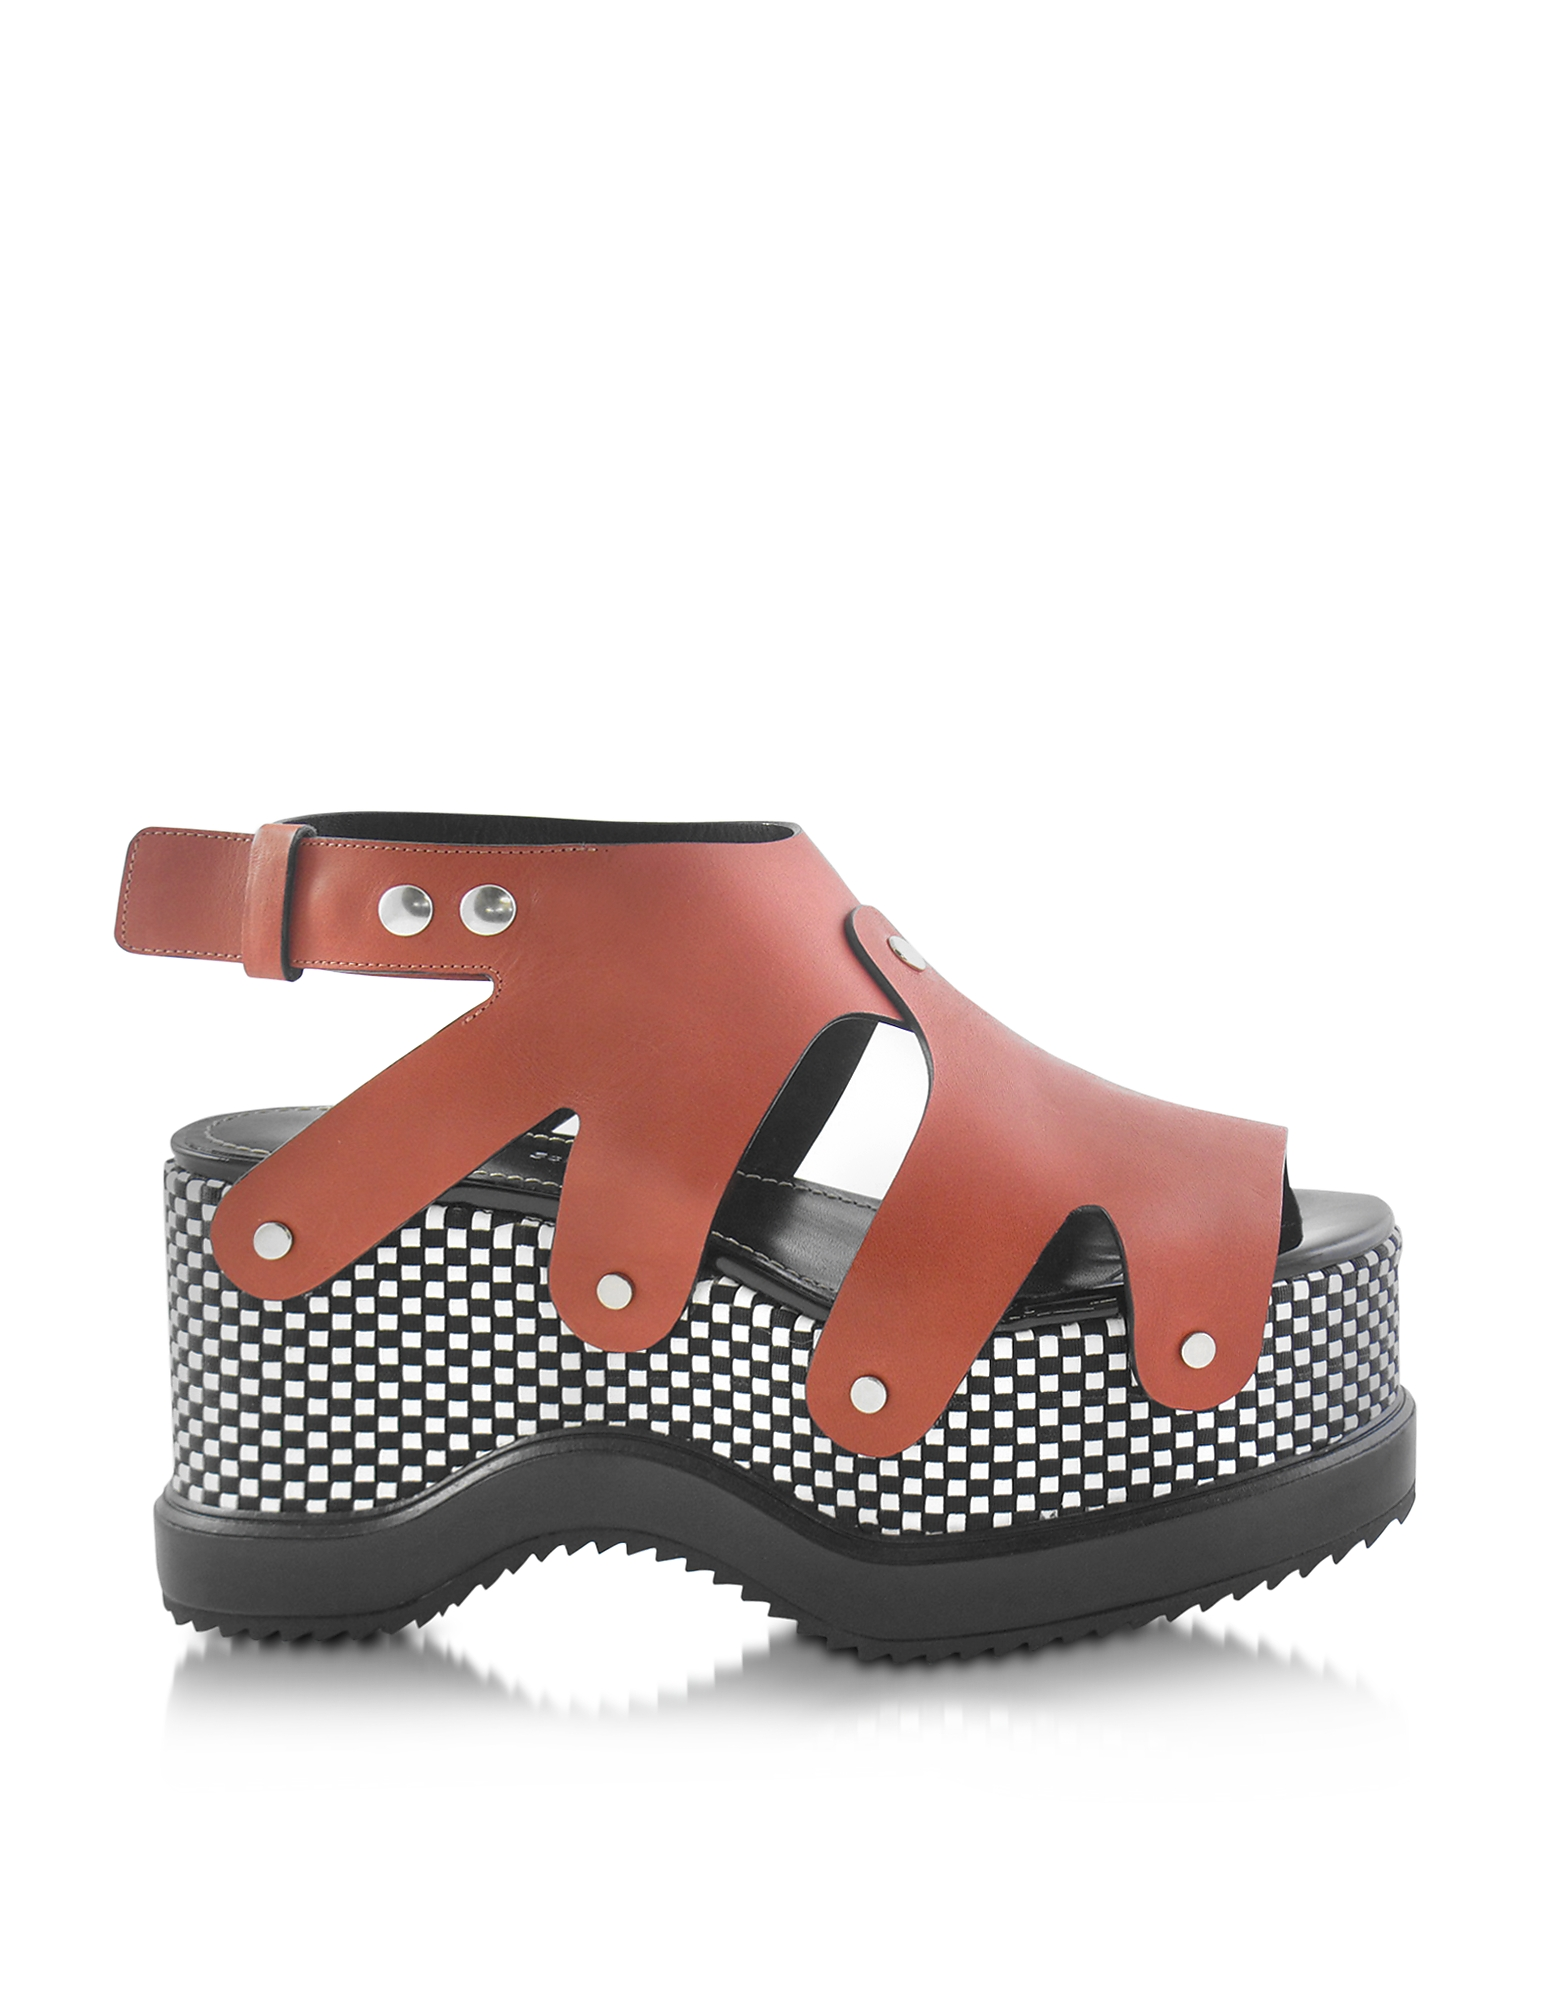 Image of Proenza Schouler Designer Shoes, Nappa Leather Sandal w/Optical Print Wedge